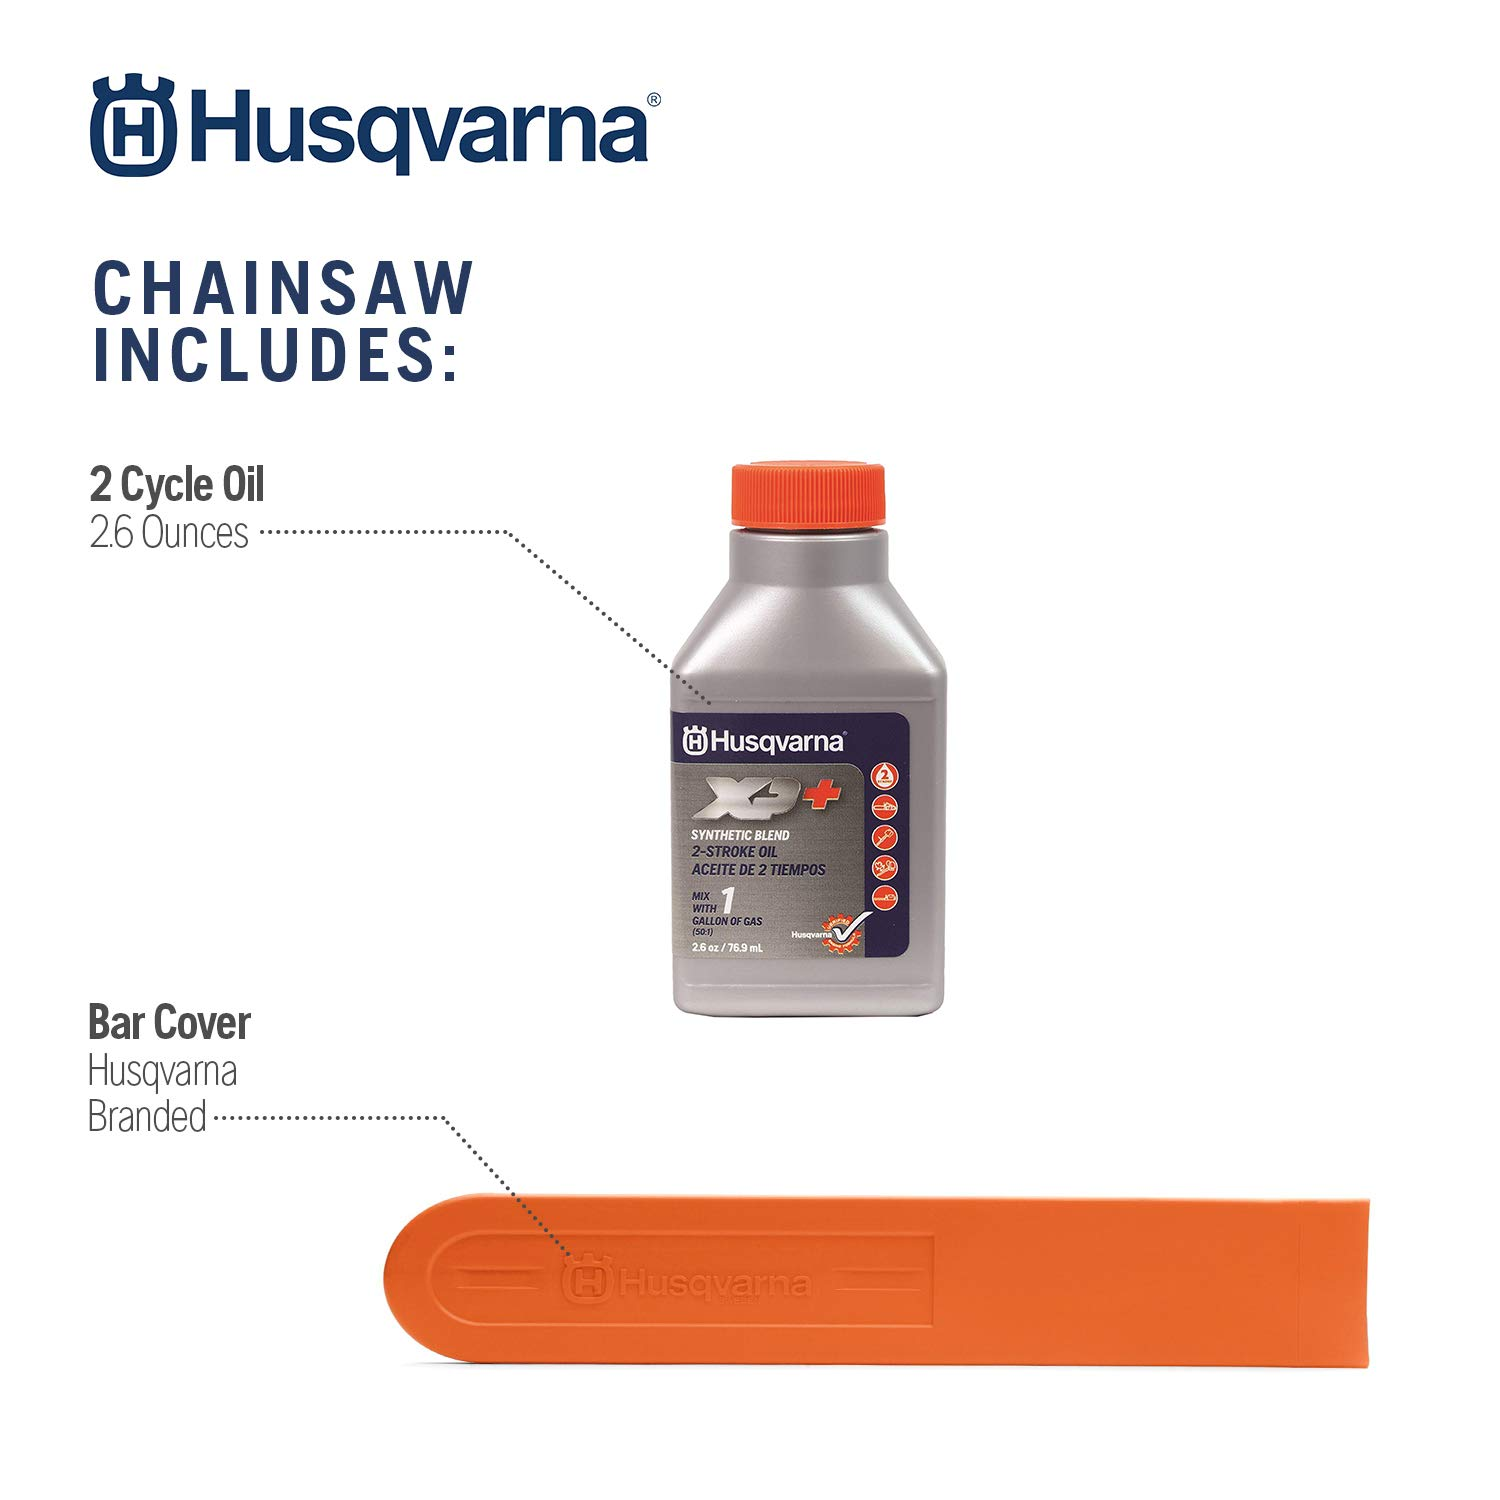 Husqvarna 460 Rancher Chainsaws product image 11